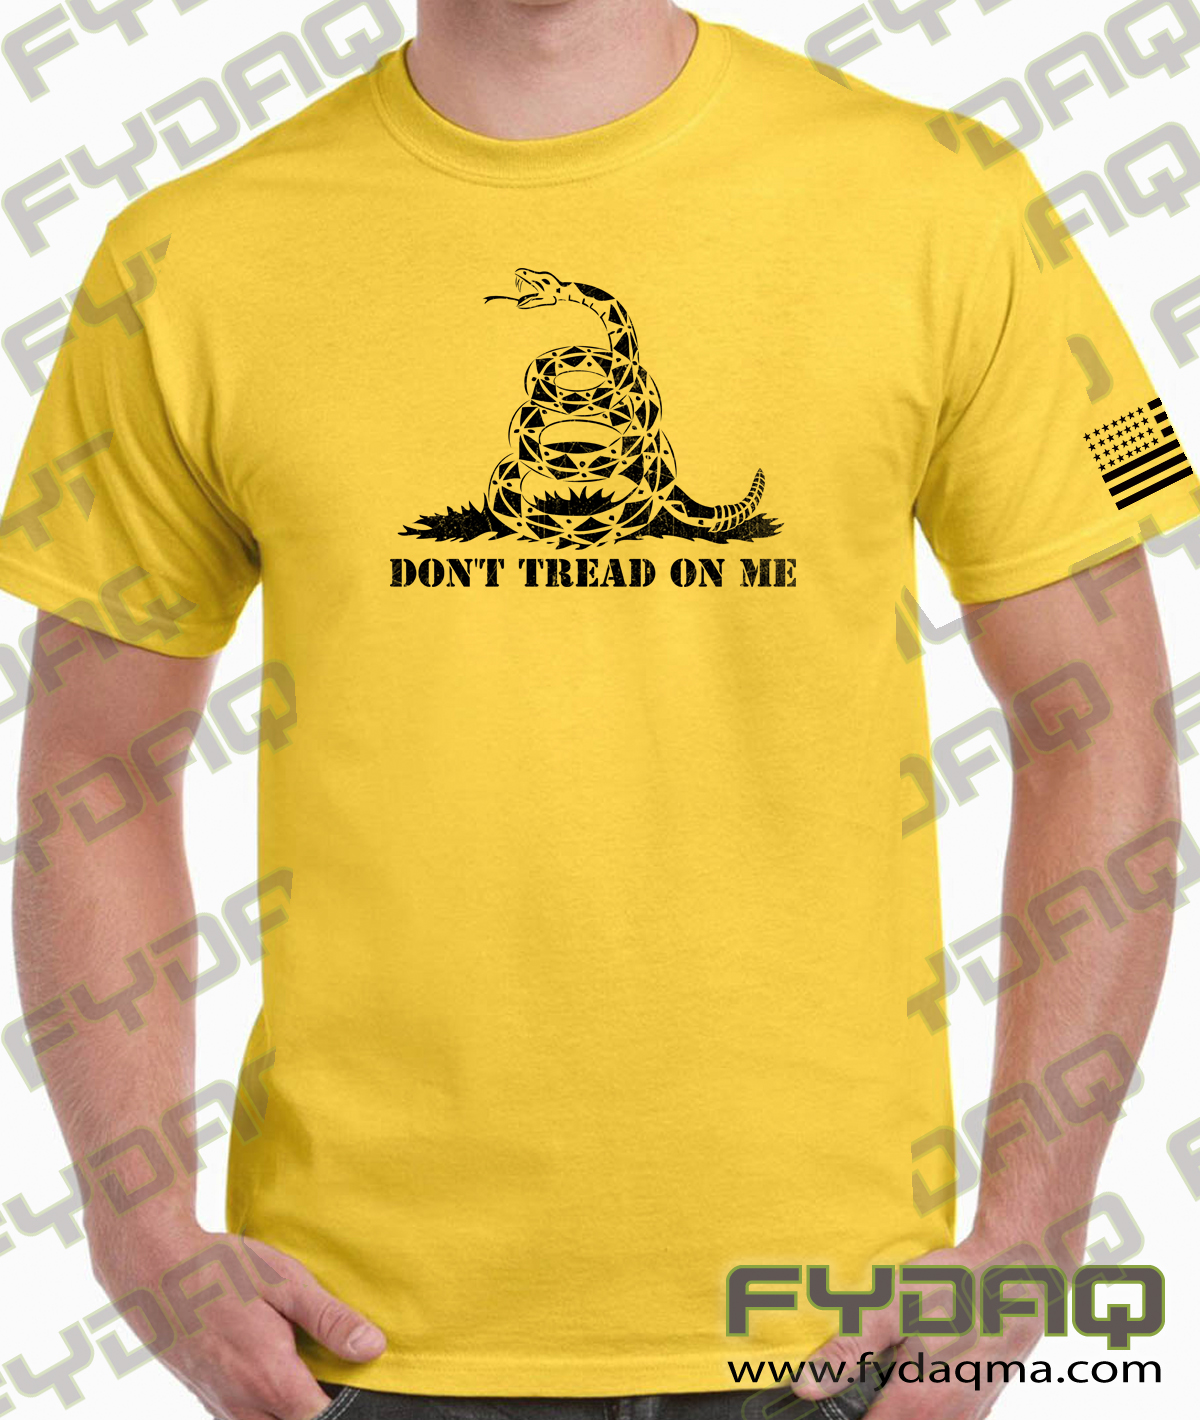 gadsden-flag-don't-tread-on-me-yellow-tshirt-fydaq